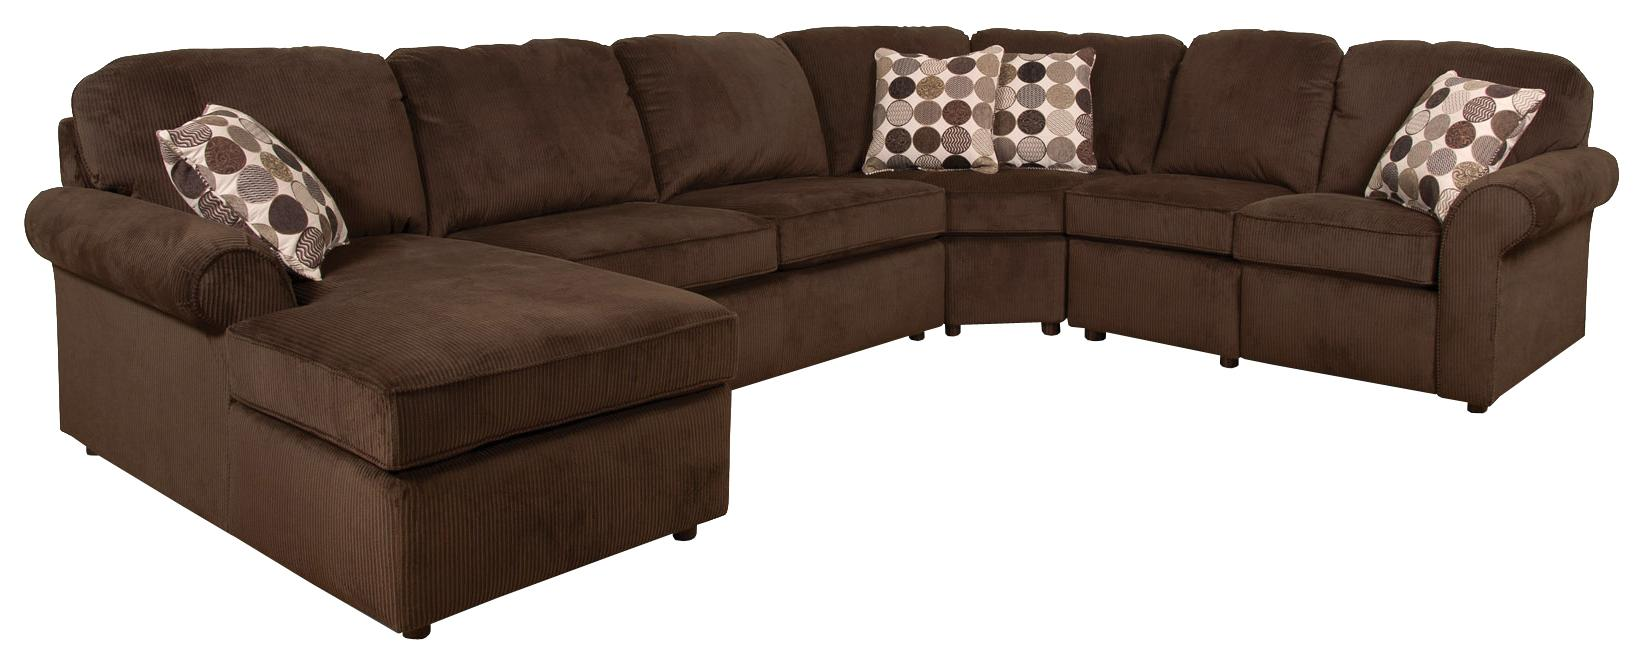 cream full leather chaise sectional sofa restoration hardware maxwell review england malibu 5-6 seat (left side) | h.l ...